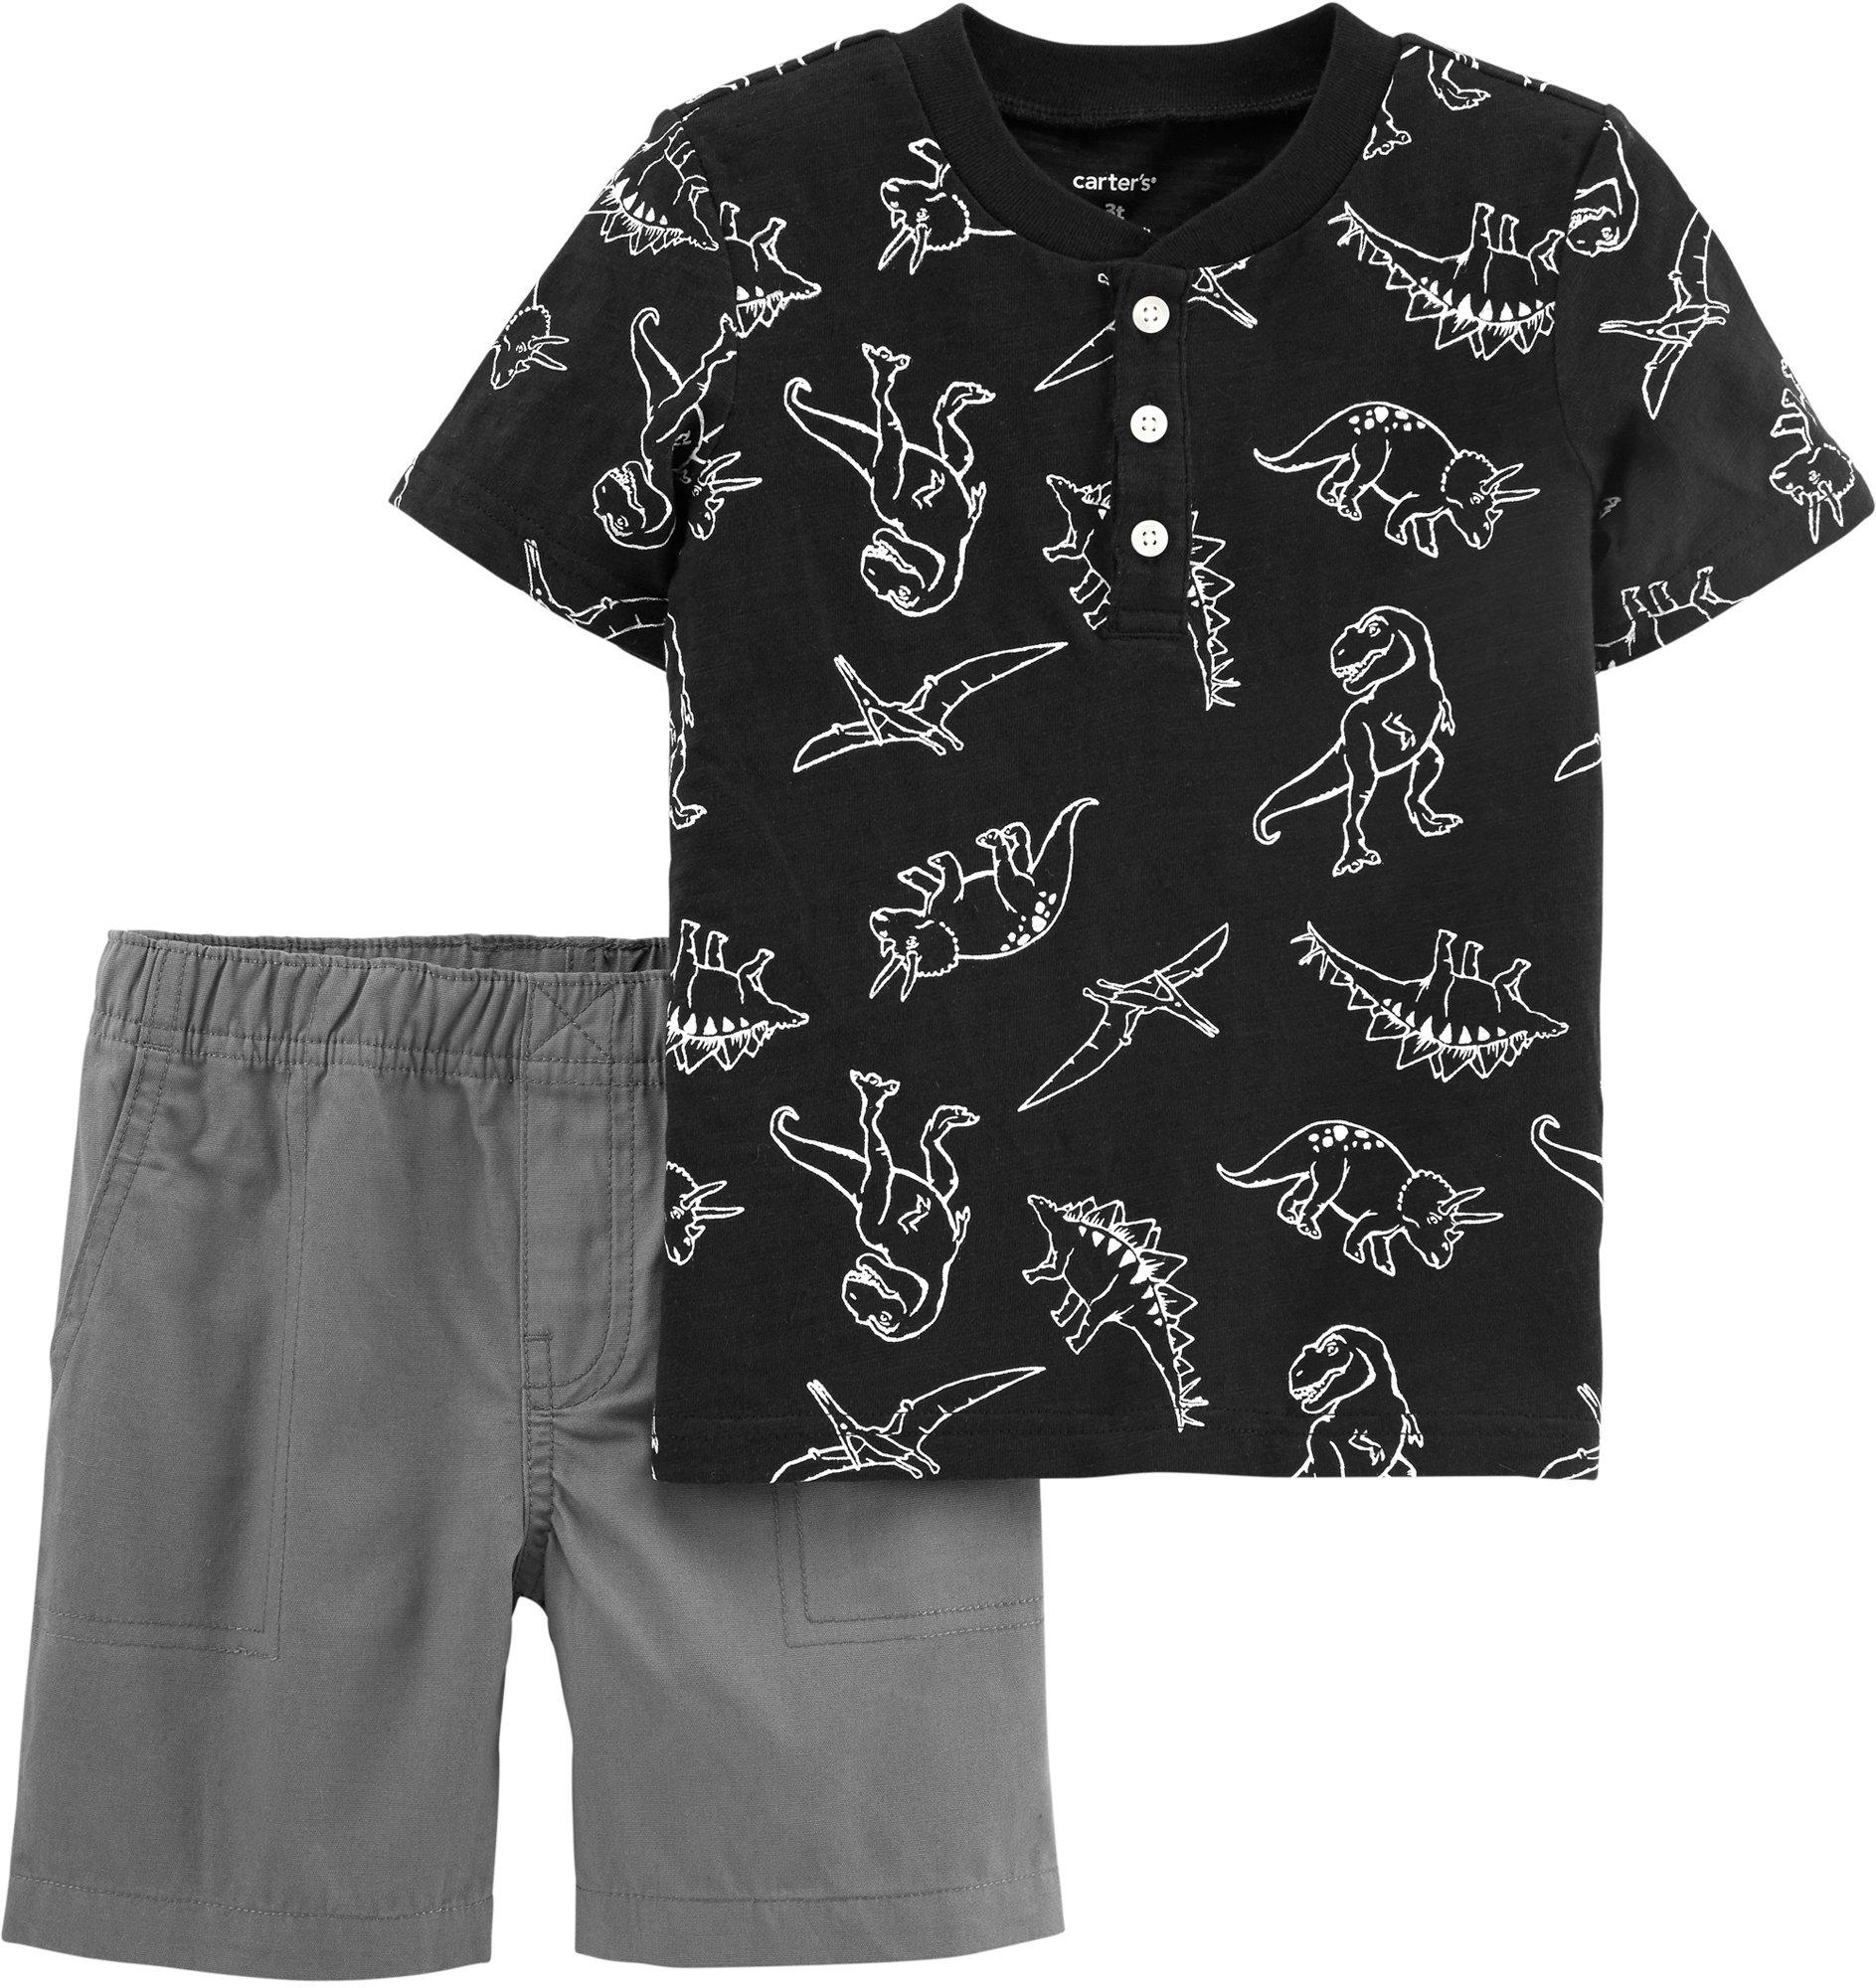 Carter/'s Toddler Boys/' Black /& White Swim Short Size 2T 4T